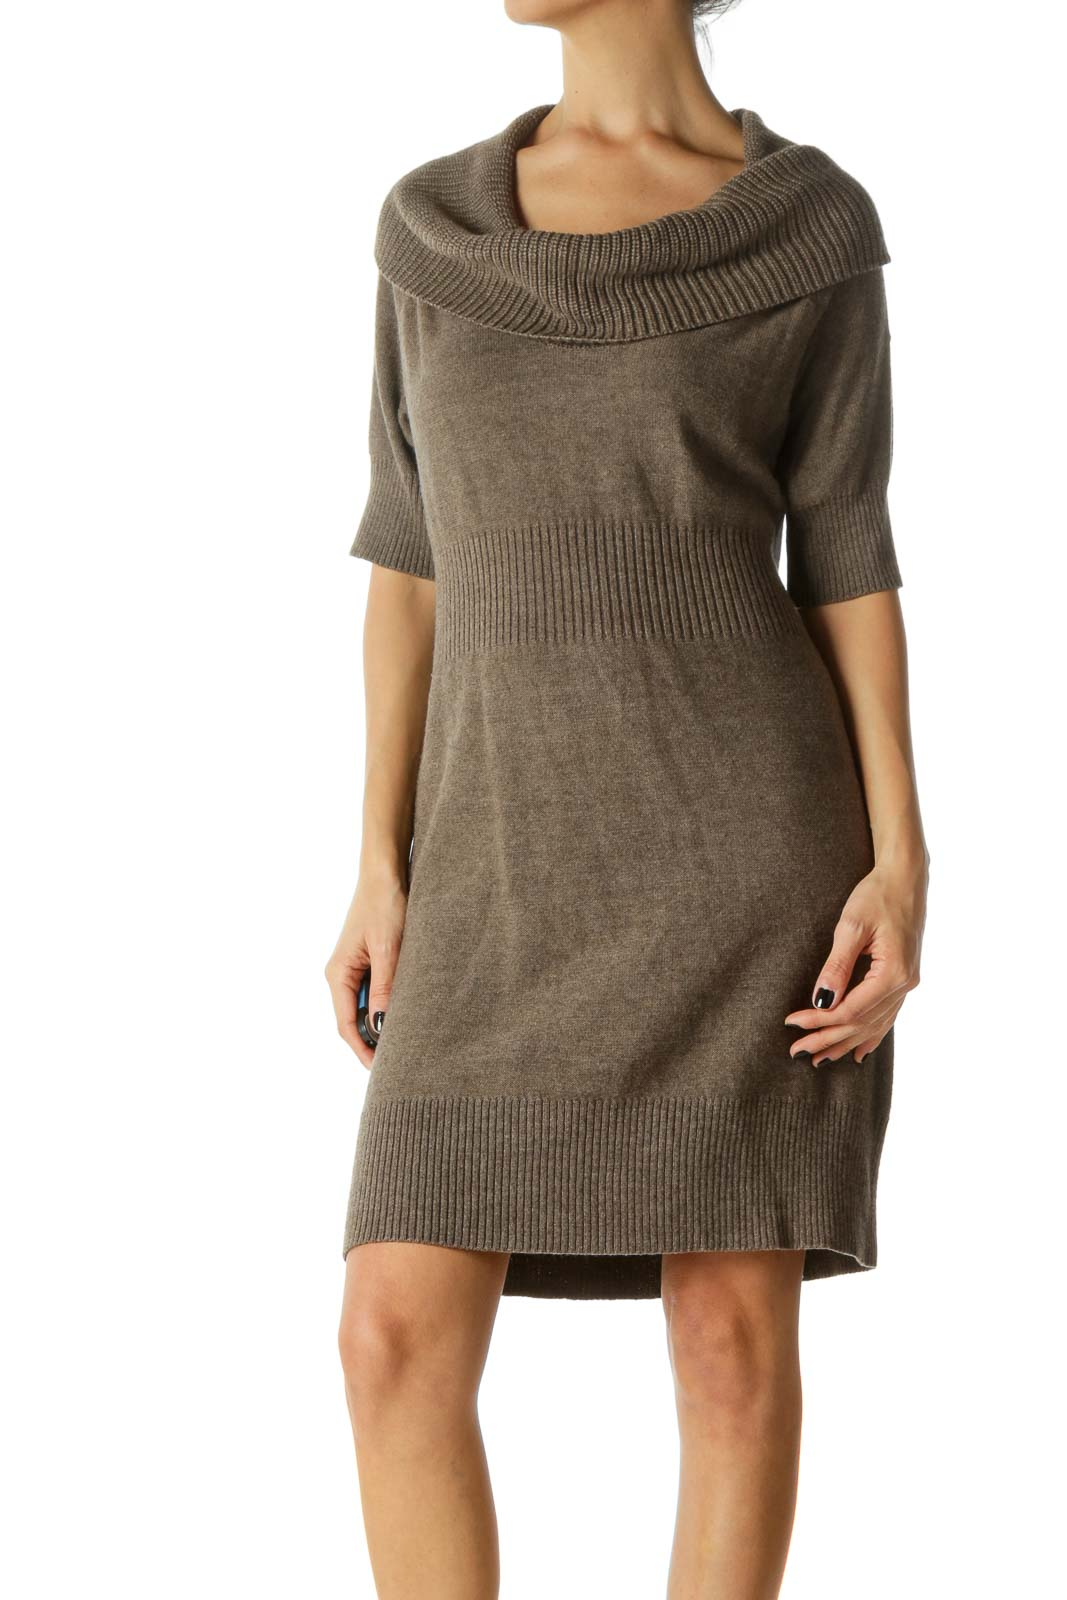 Brown Cowl Neck Clinched Waist Knit Dress